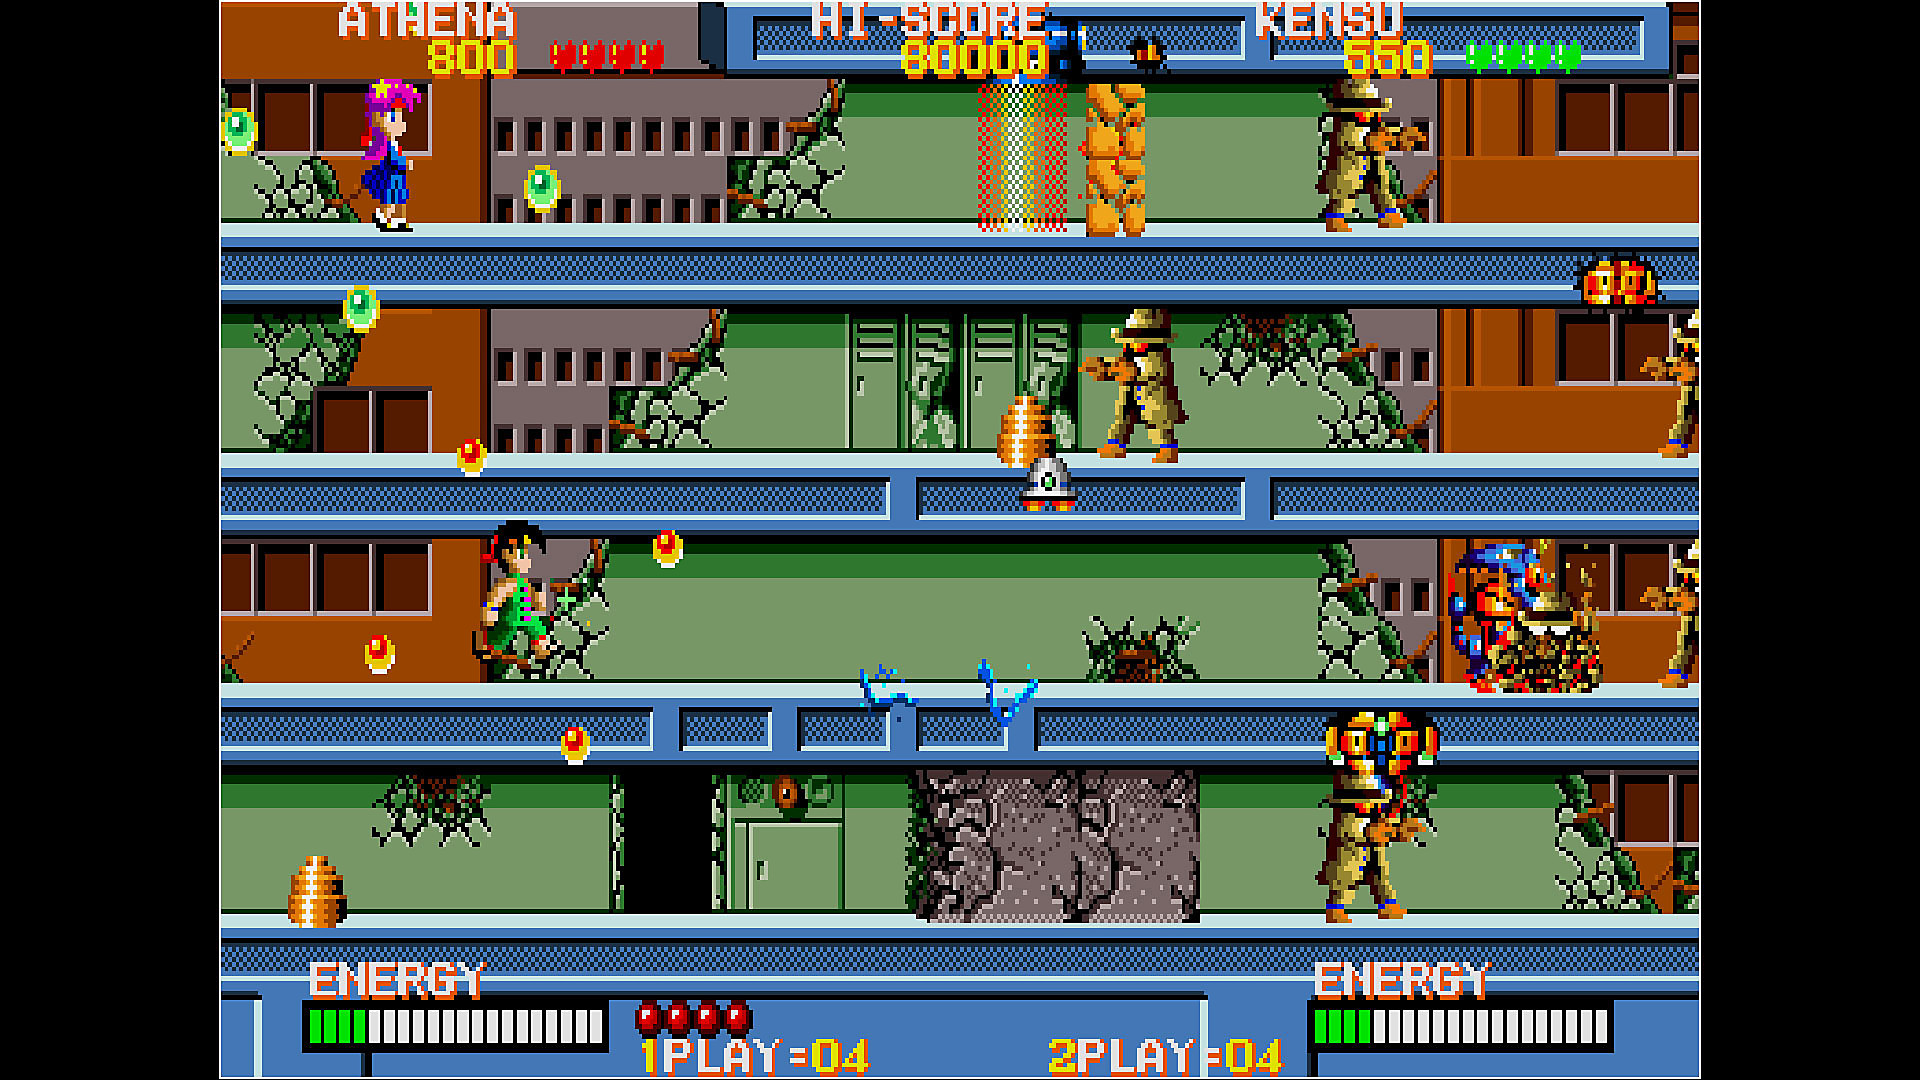 Arcade Archives PSYCHO SOLDIER Gameplay